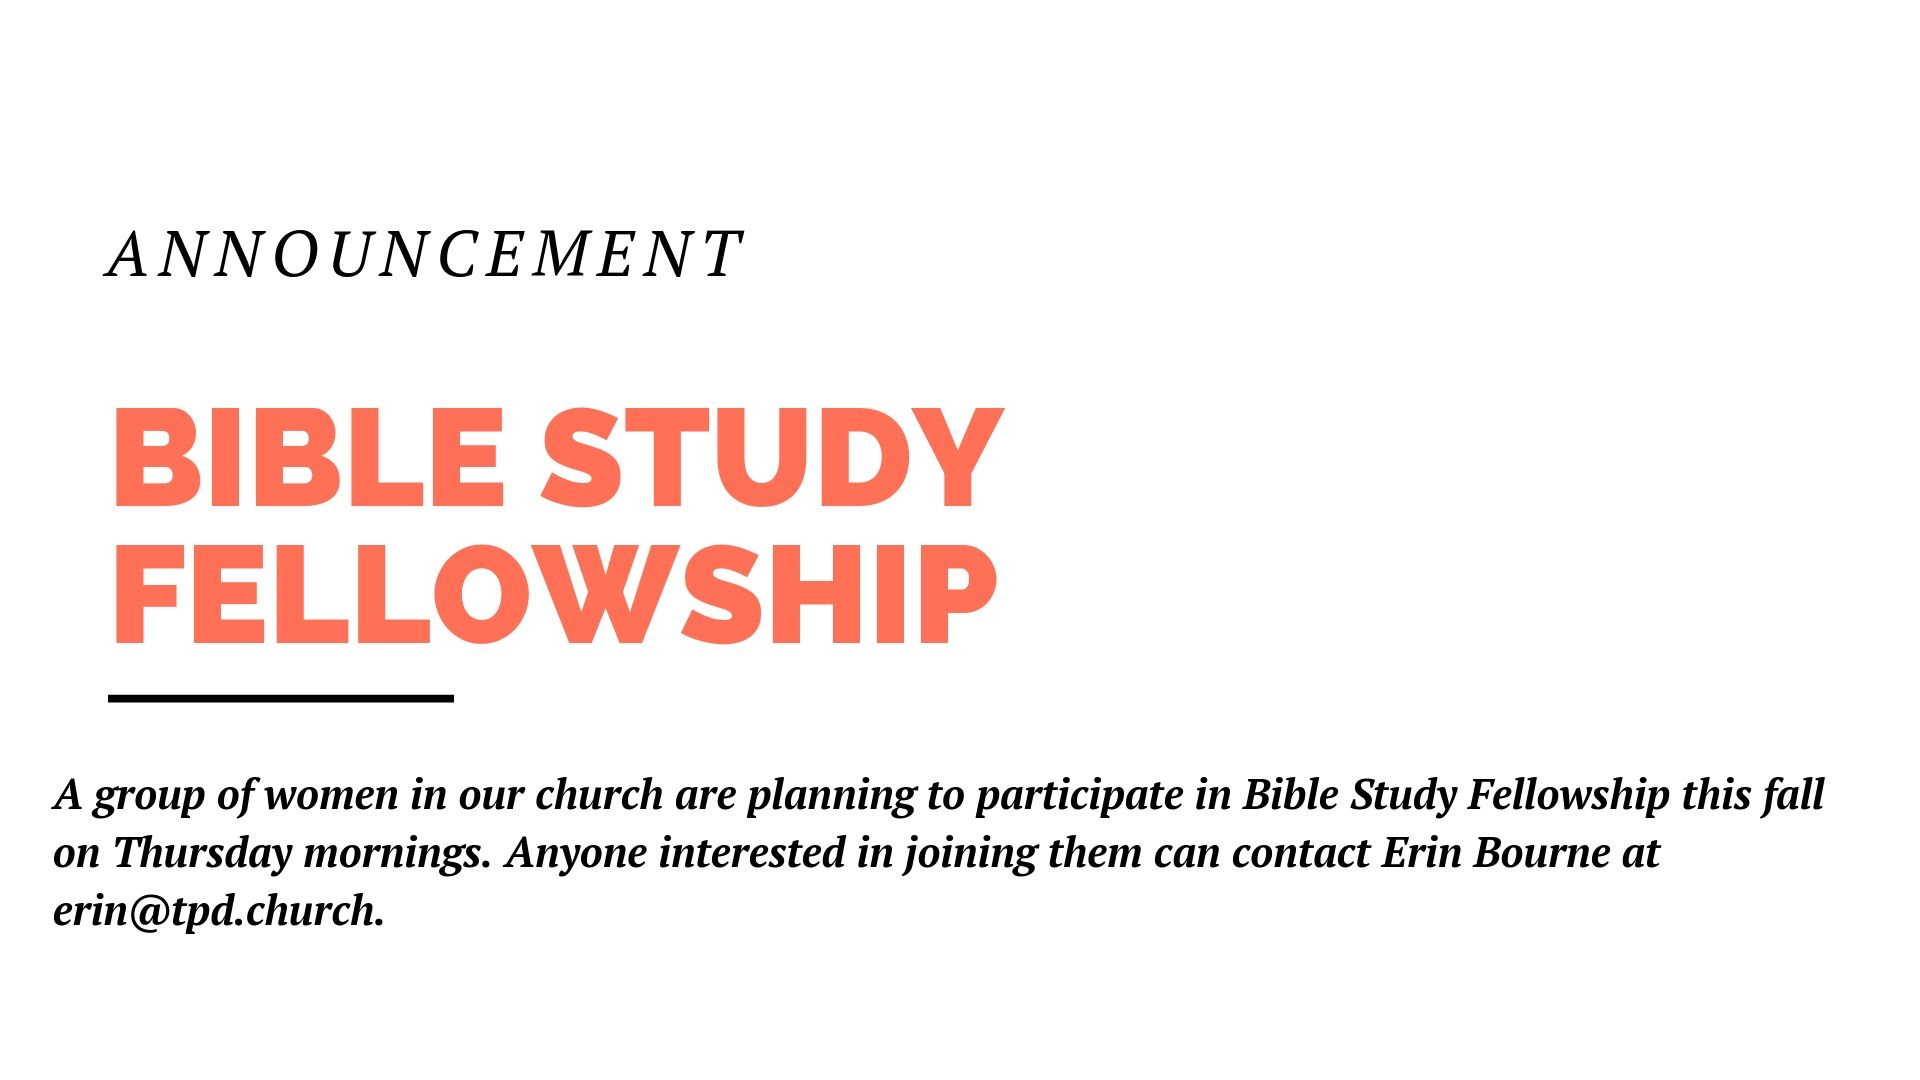 A group of women in our church are planning to participate in Bible Study Fellowship this fall on Thursday mornings. Anyone interested in joining them can contact Erin Bourne at erin@tpd.church.